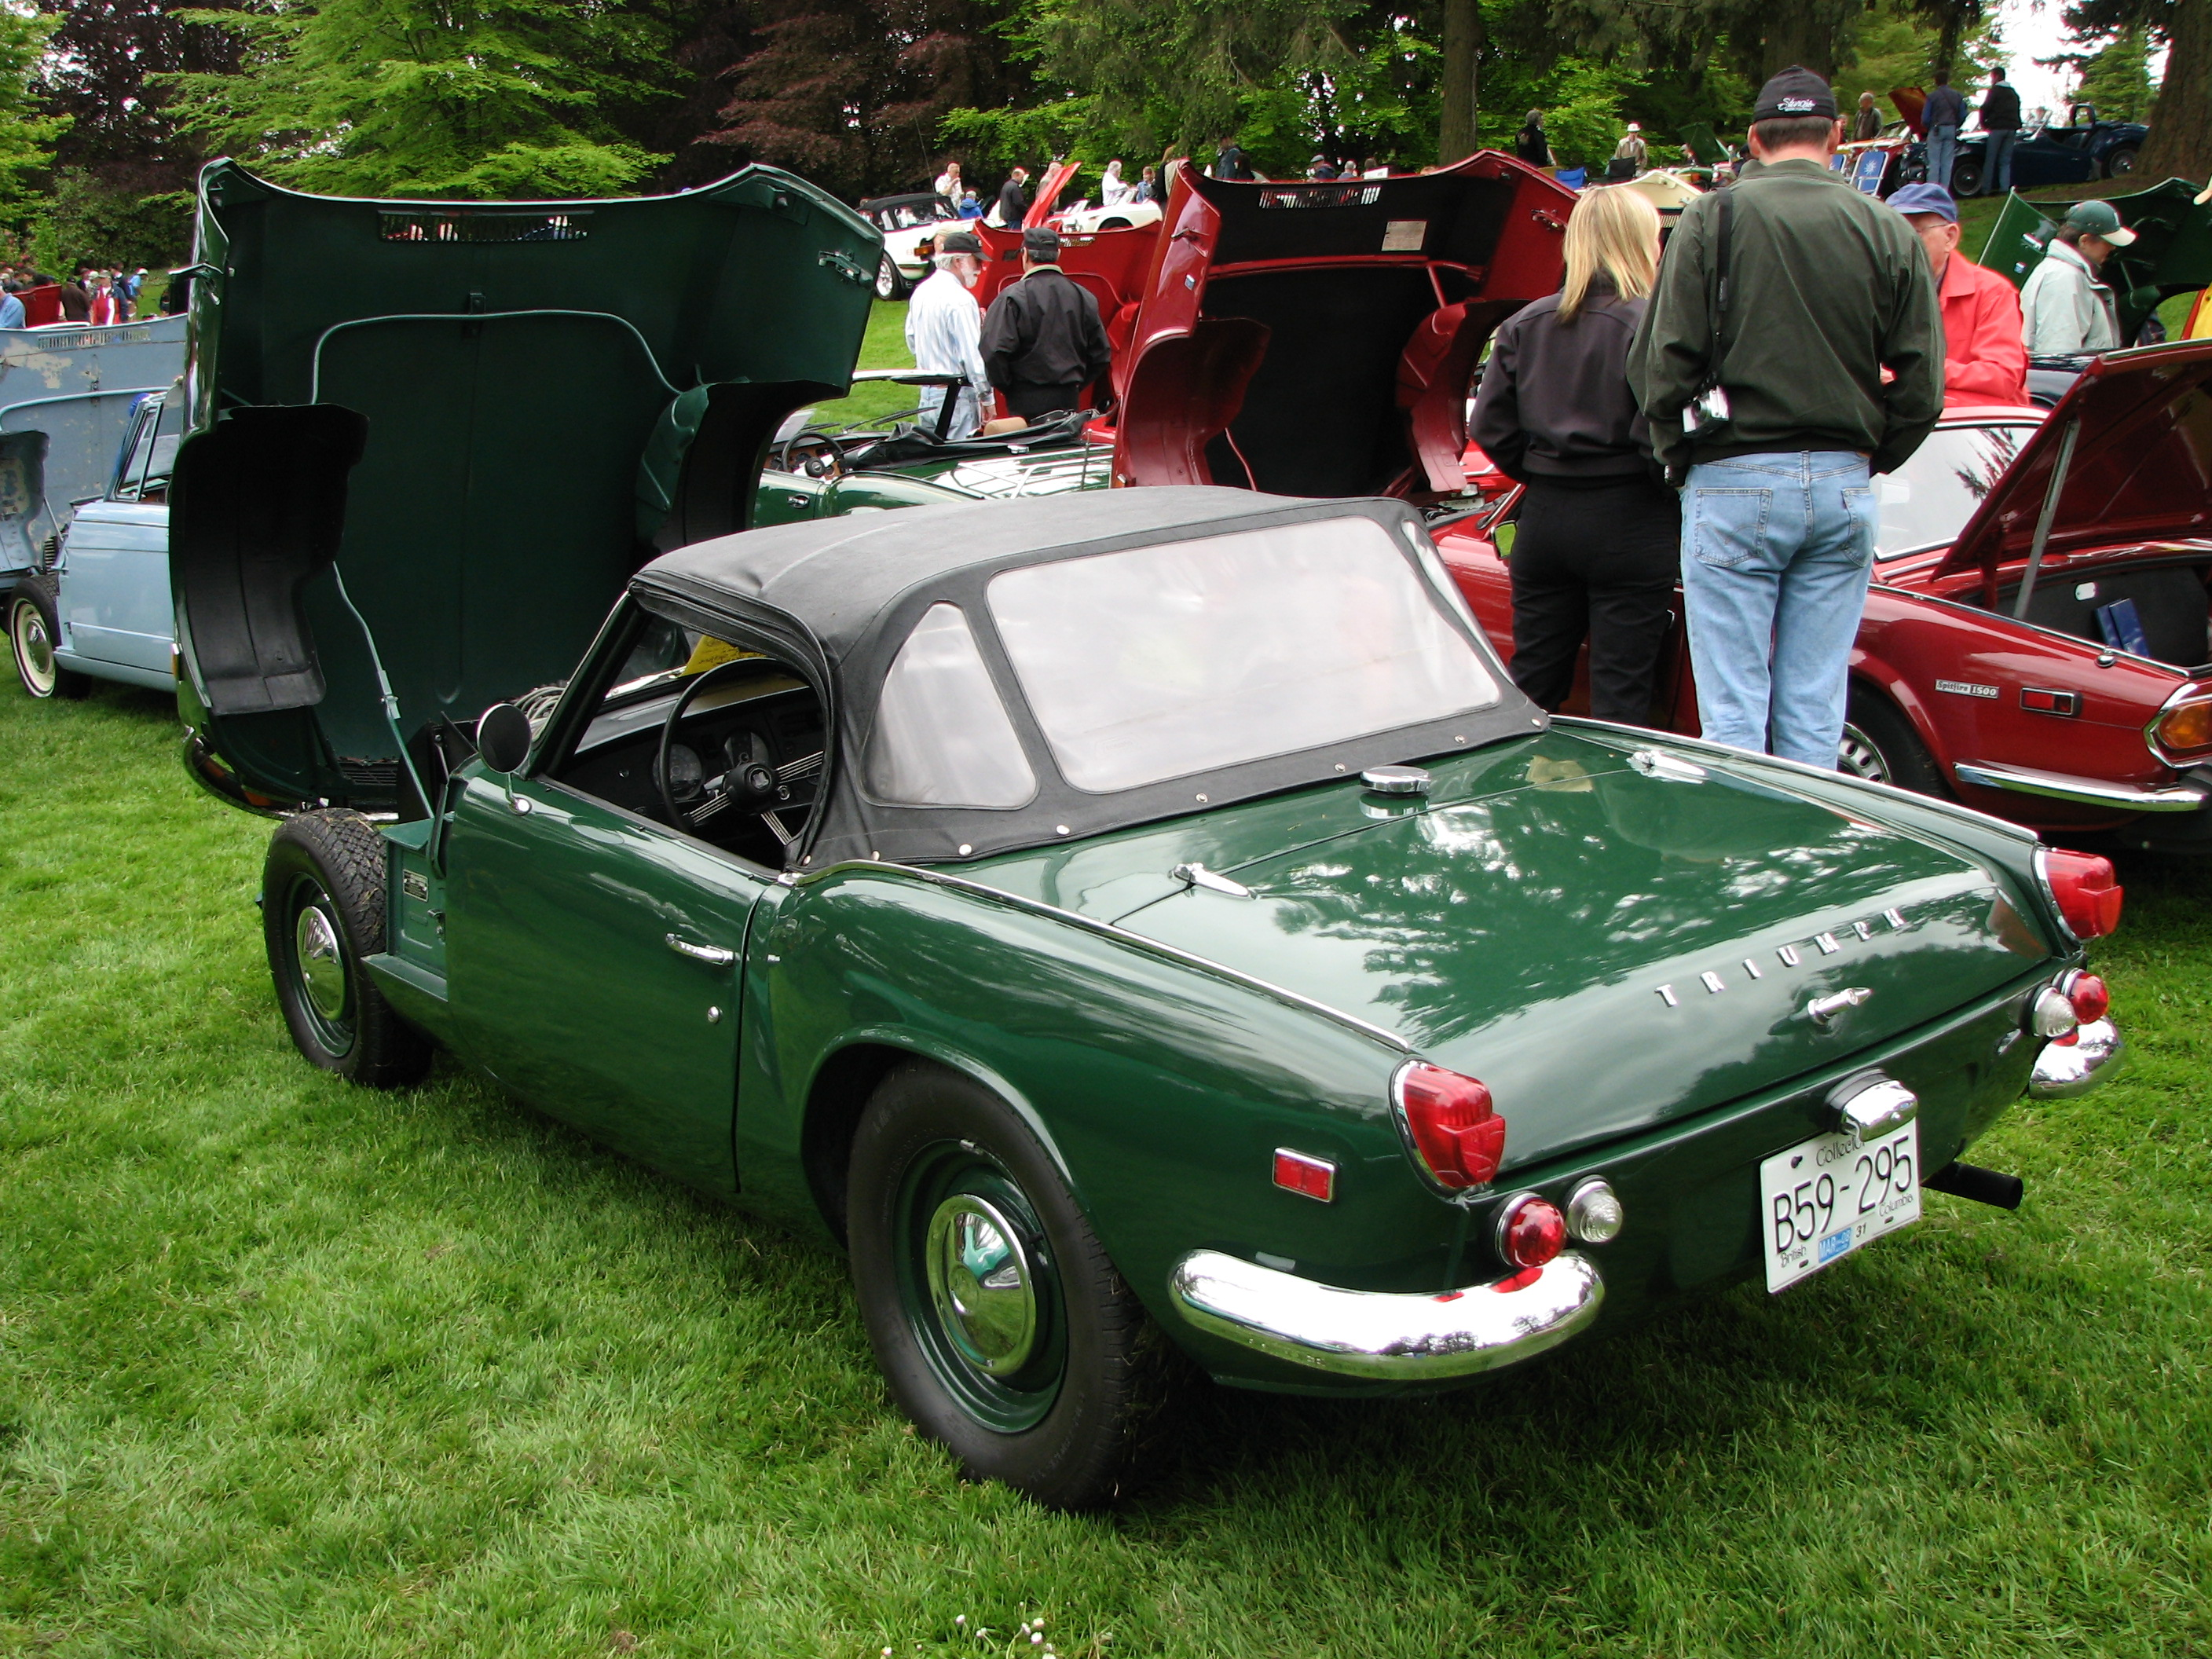 file 1969 triumph spitfire mk3 us specs wikimedia commons. Black Bedroom Furniture Sets. Home Design Ideas